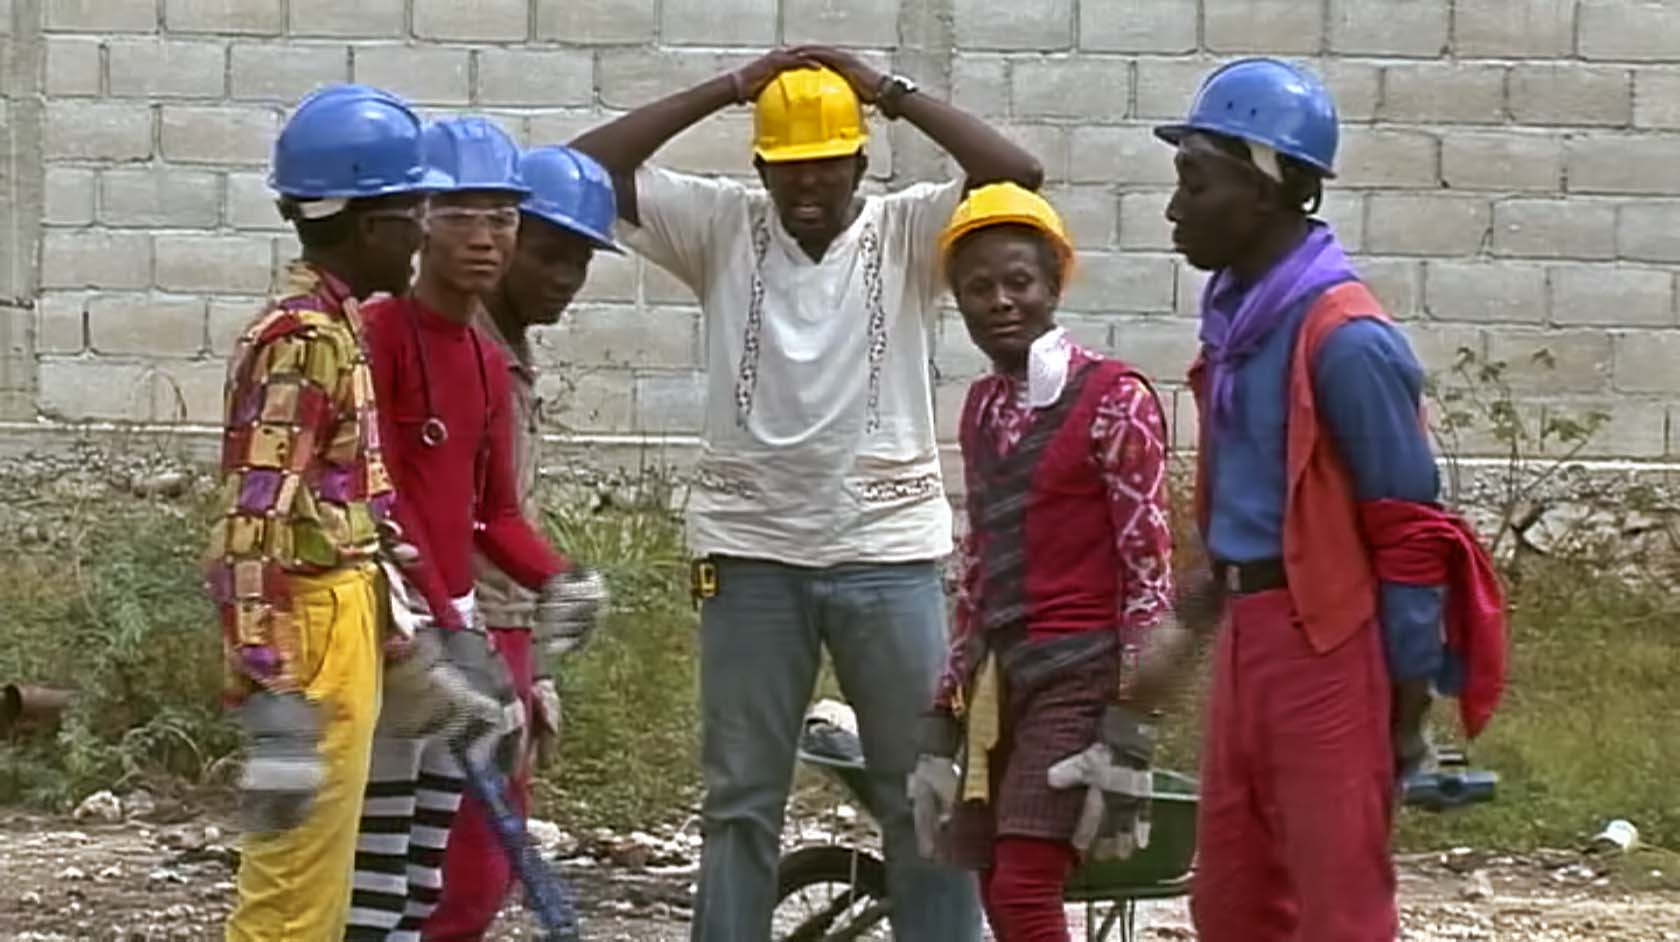 A film clip of a group of men wearing hard hats, dressed in unusual clothing standing in a building site.